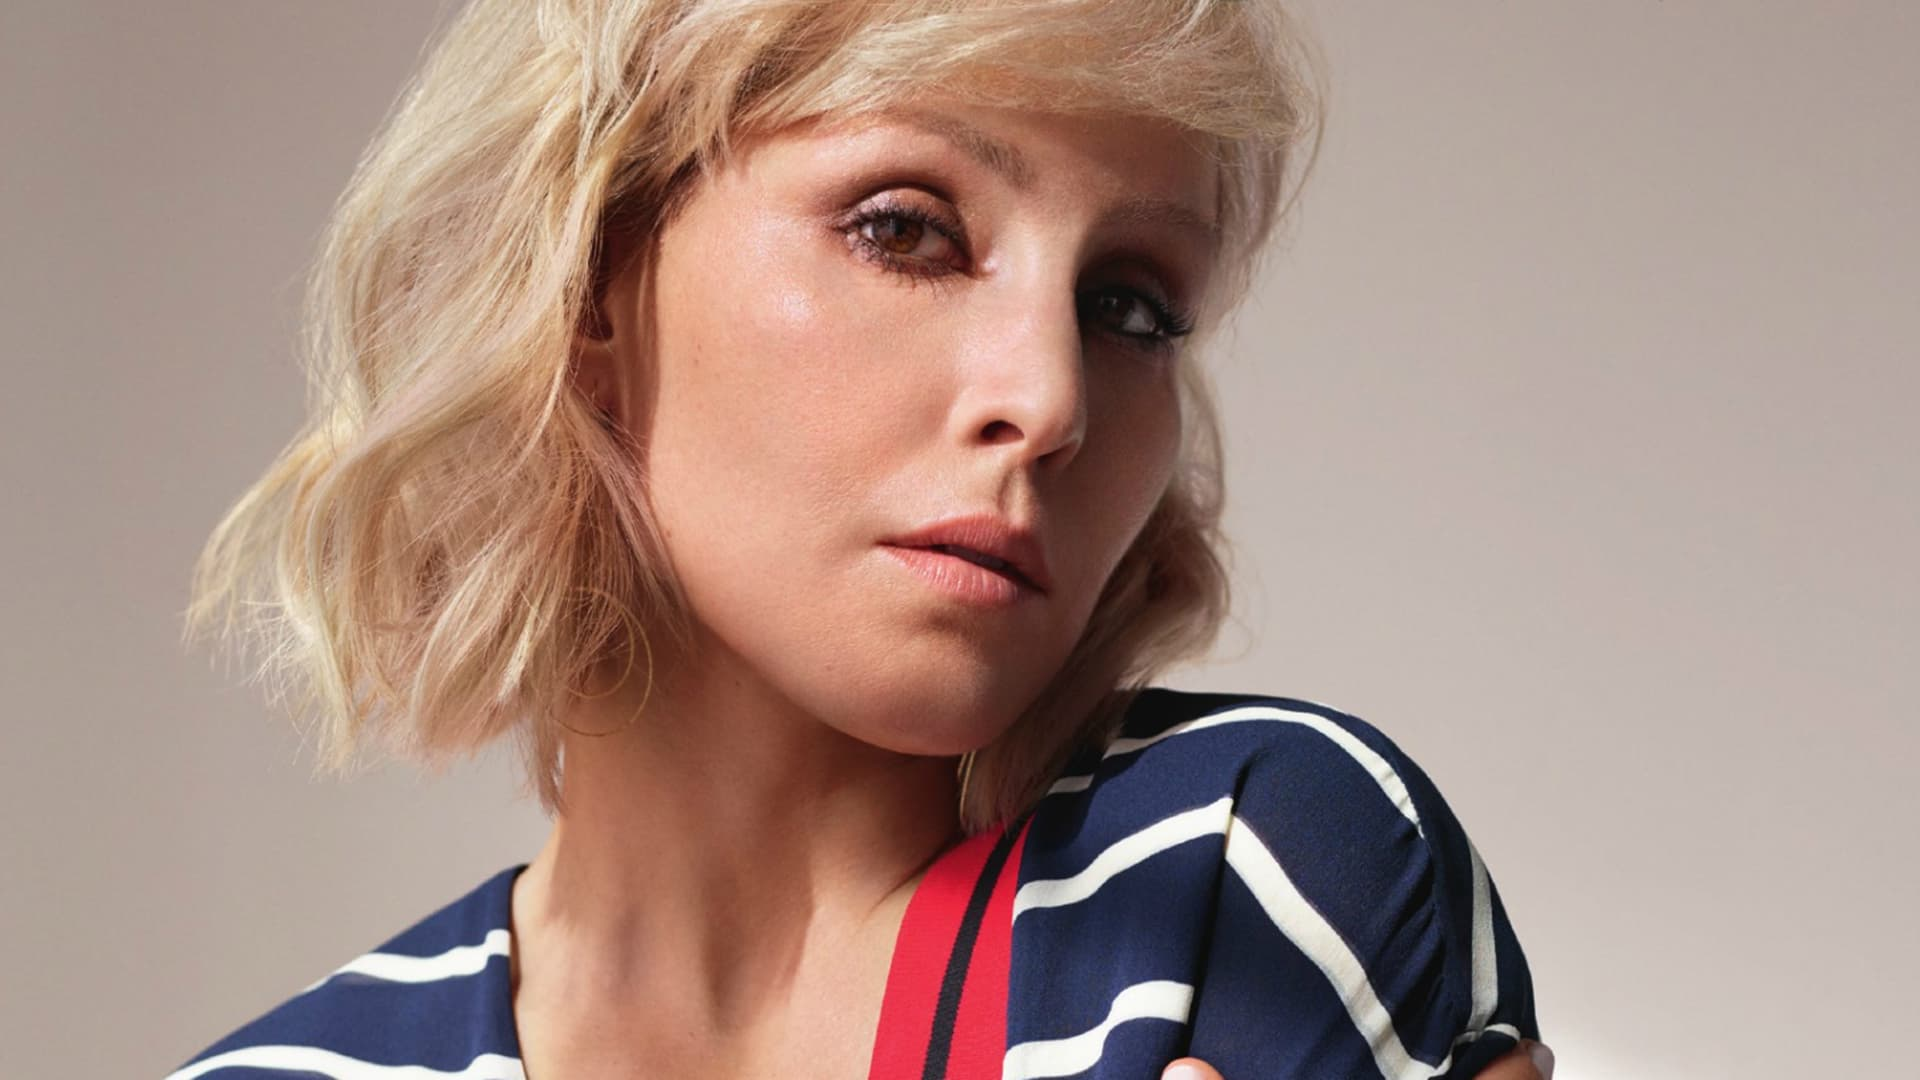 Noomi Rapace High Resolution Wallpaper